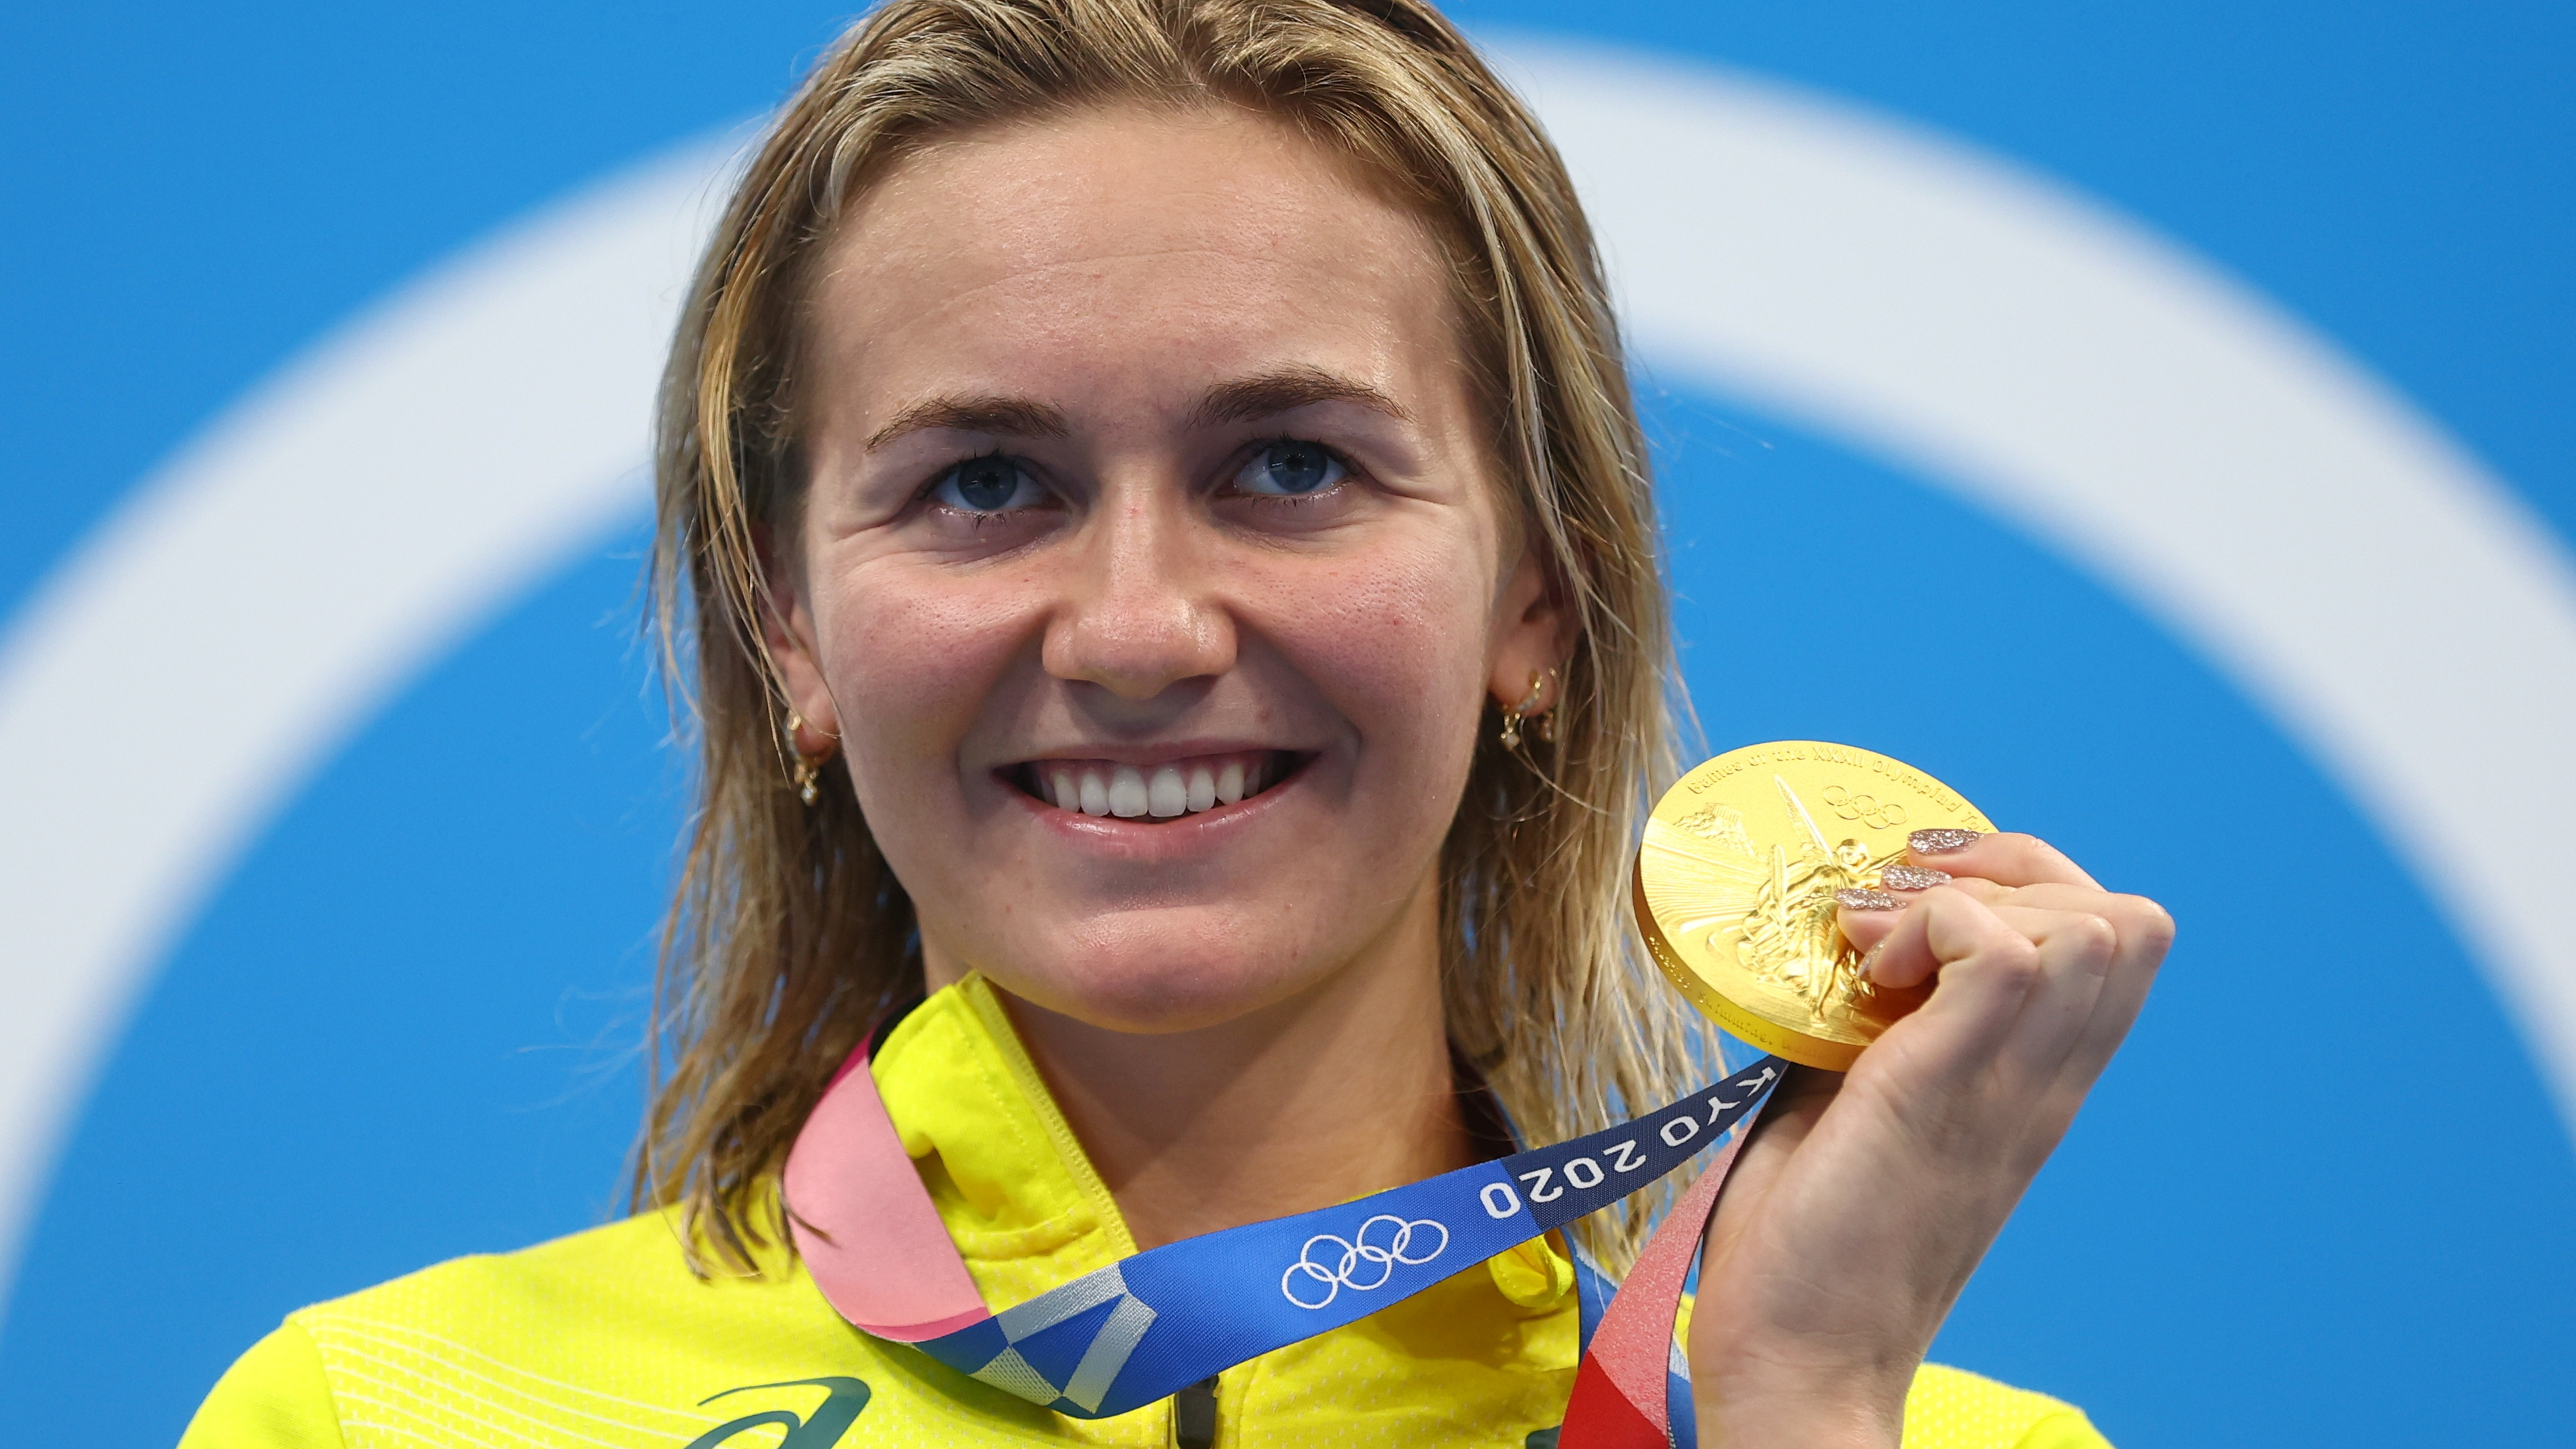 Tokyo 2020 Olympics - Swimming - Women's 200m Freestyle - Medal Ceremony - Tokyo Aquatics Centre - Tokyo, Japan - July 28, 2021. Ariarne Titmus of Australia poses with her gold medal REUTERS/Kai Pfaffenbach